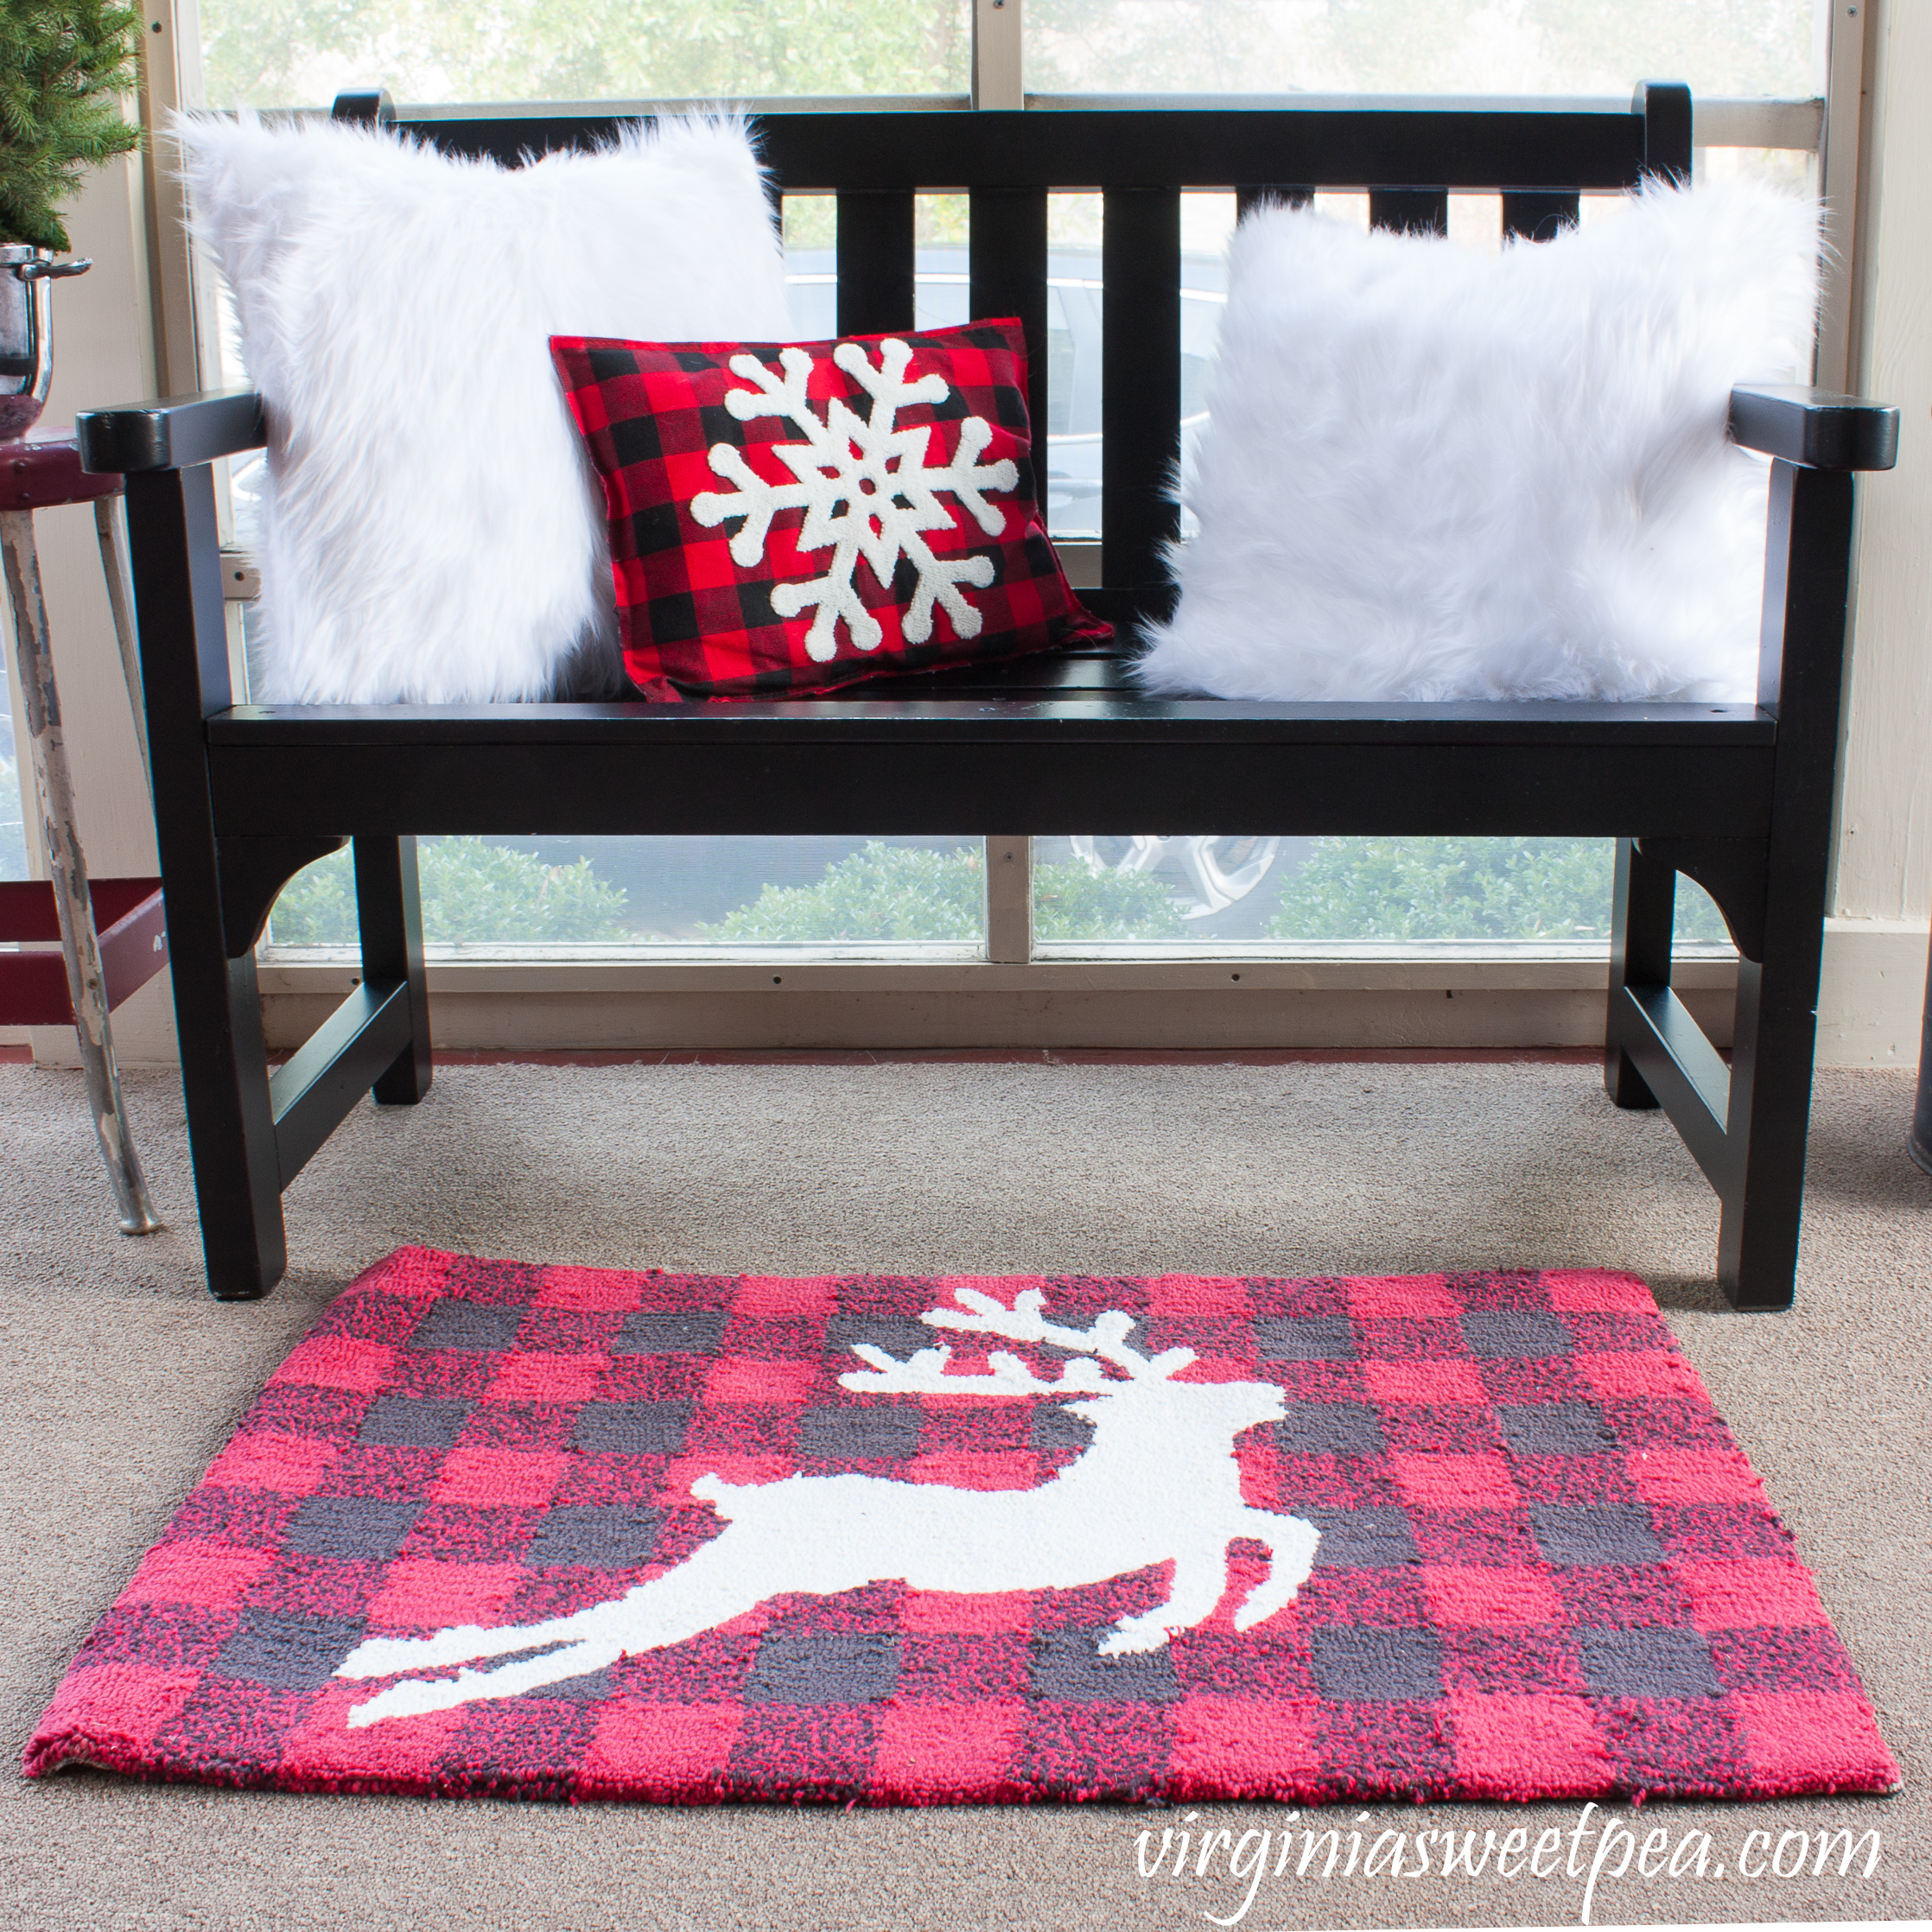 Plow and Hearth bench decorated for Christmas with fur pillow covers, a buffalo check snowflake pillow, and coordinating reindeer rug. #christmas #christmasdecorating #christmasporch